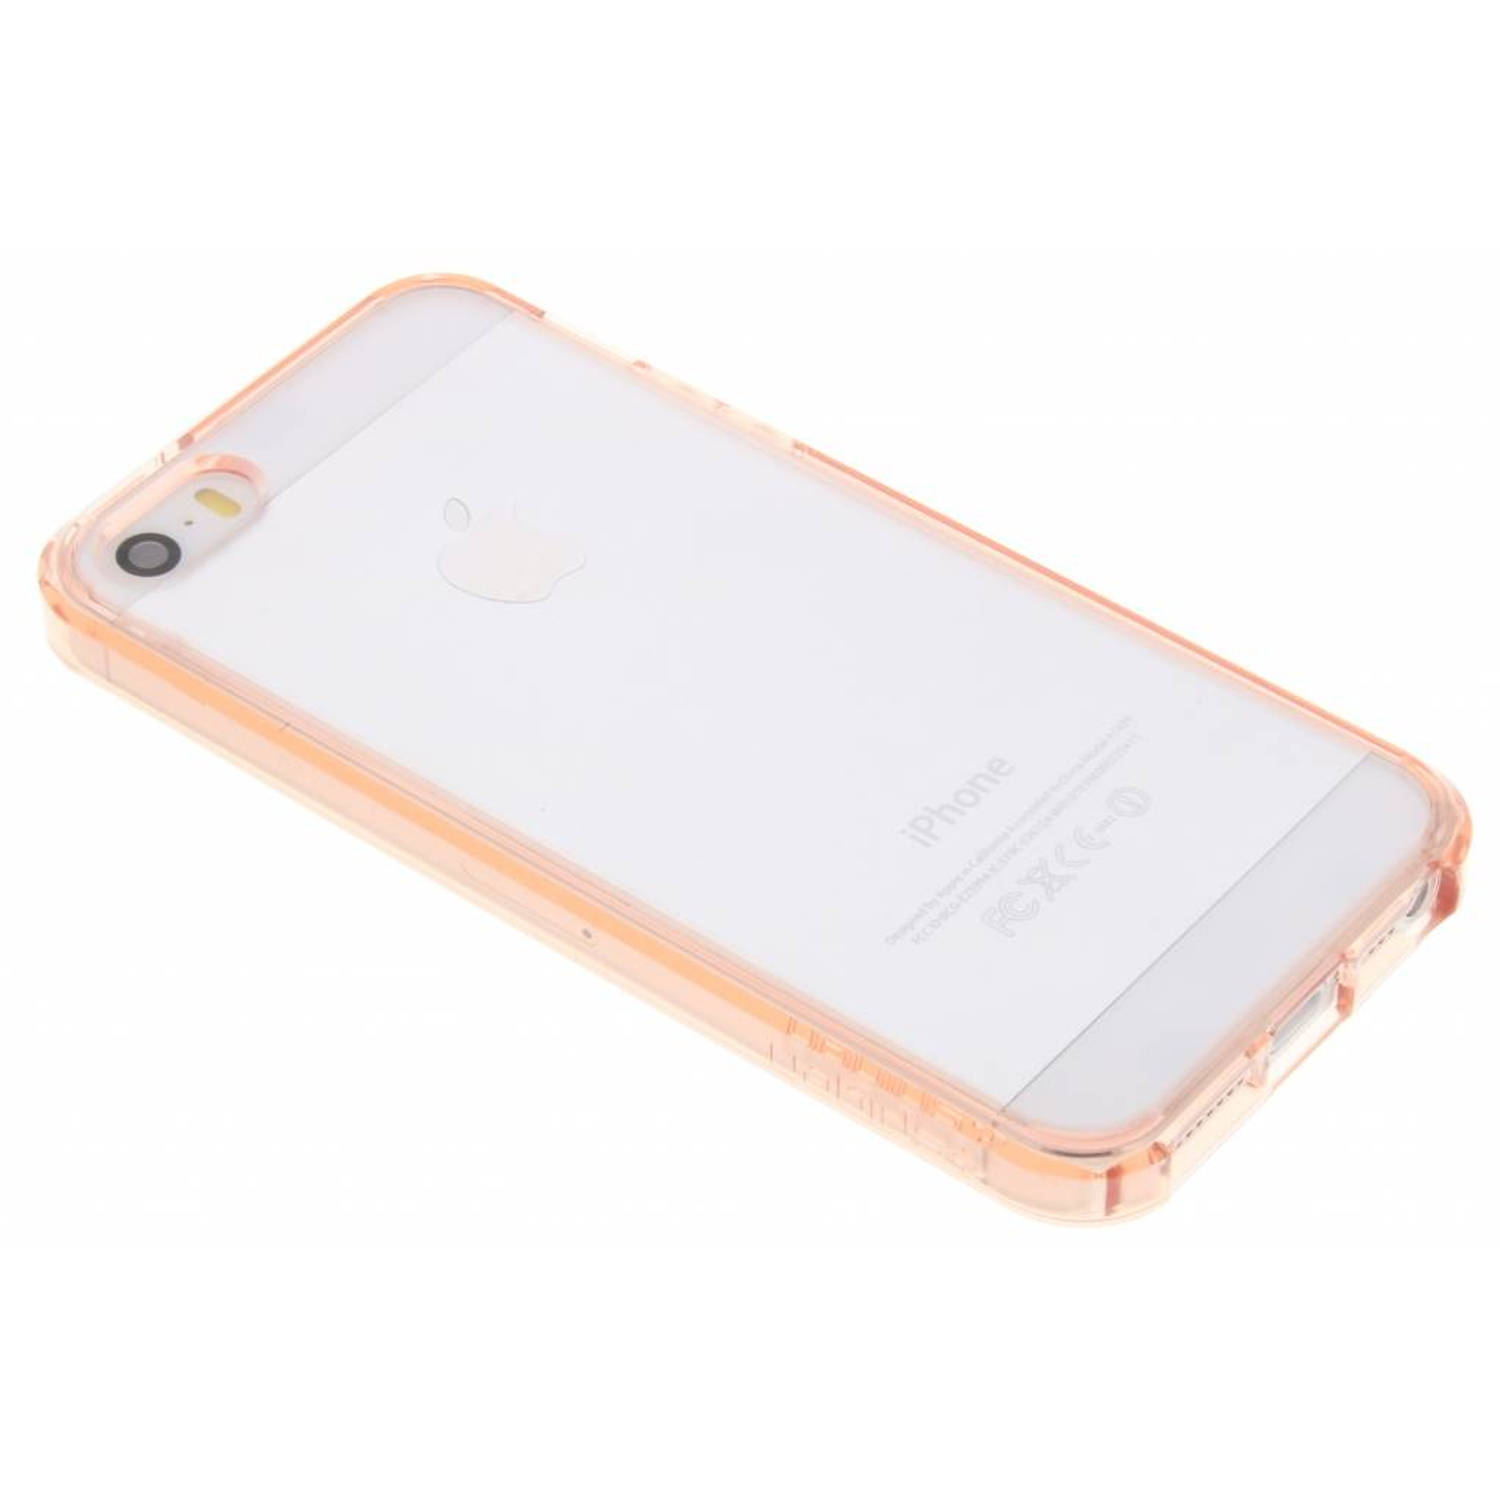 Ultra Hybrid Case voor de iPhone 5 / 5s / SE - Roze